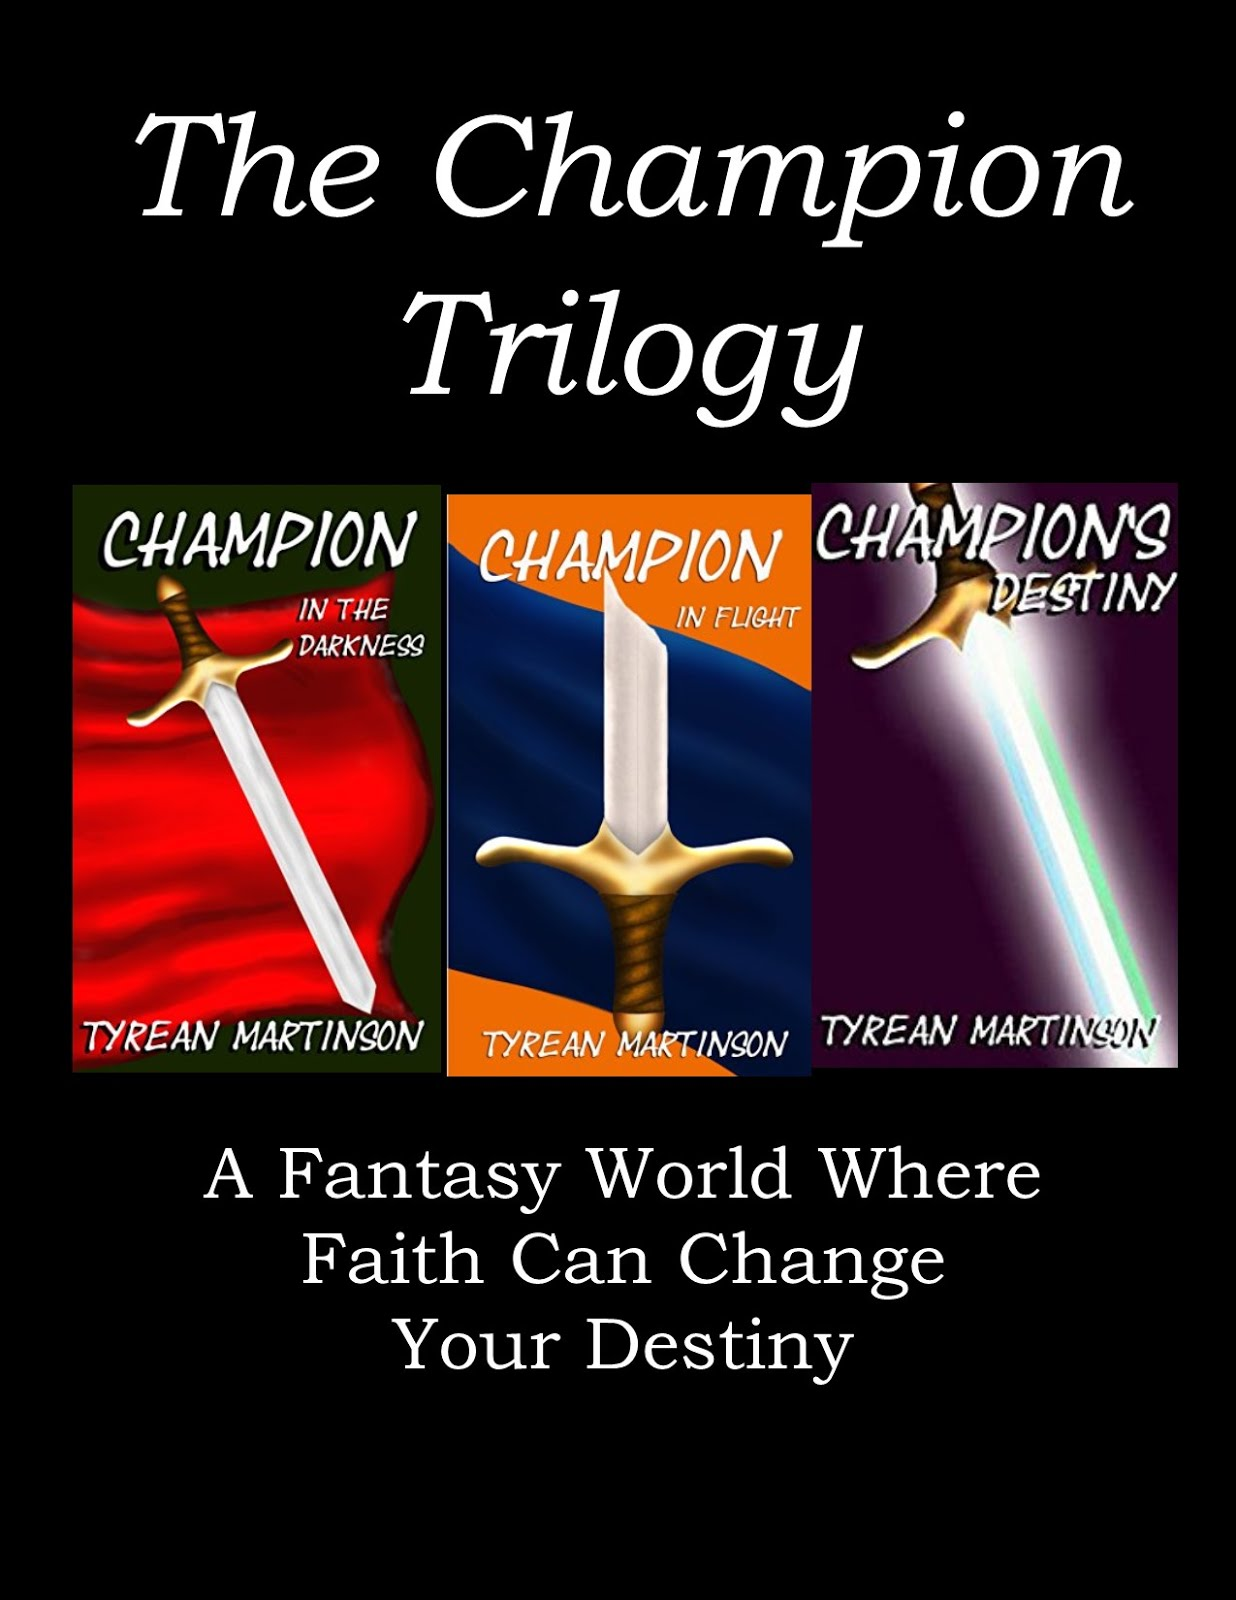 The Champion Trilogy